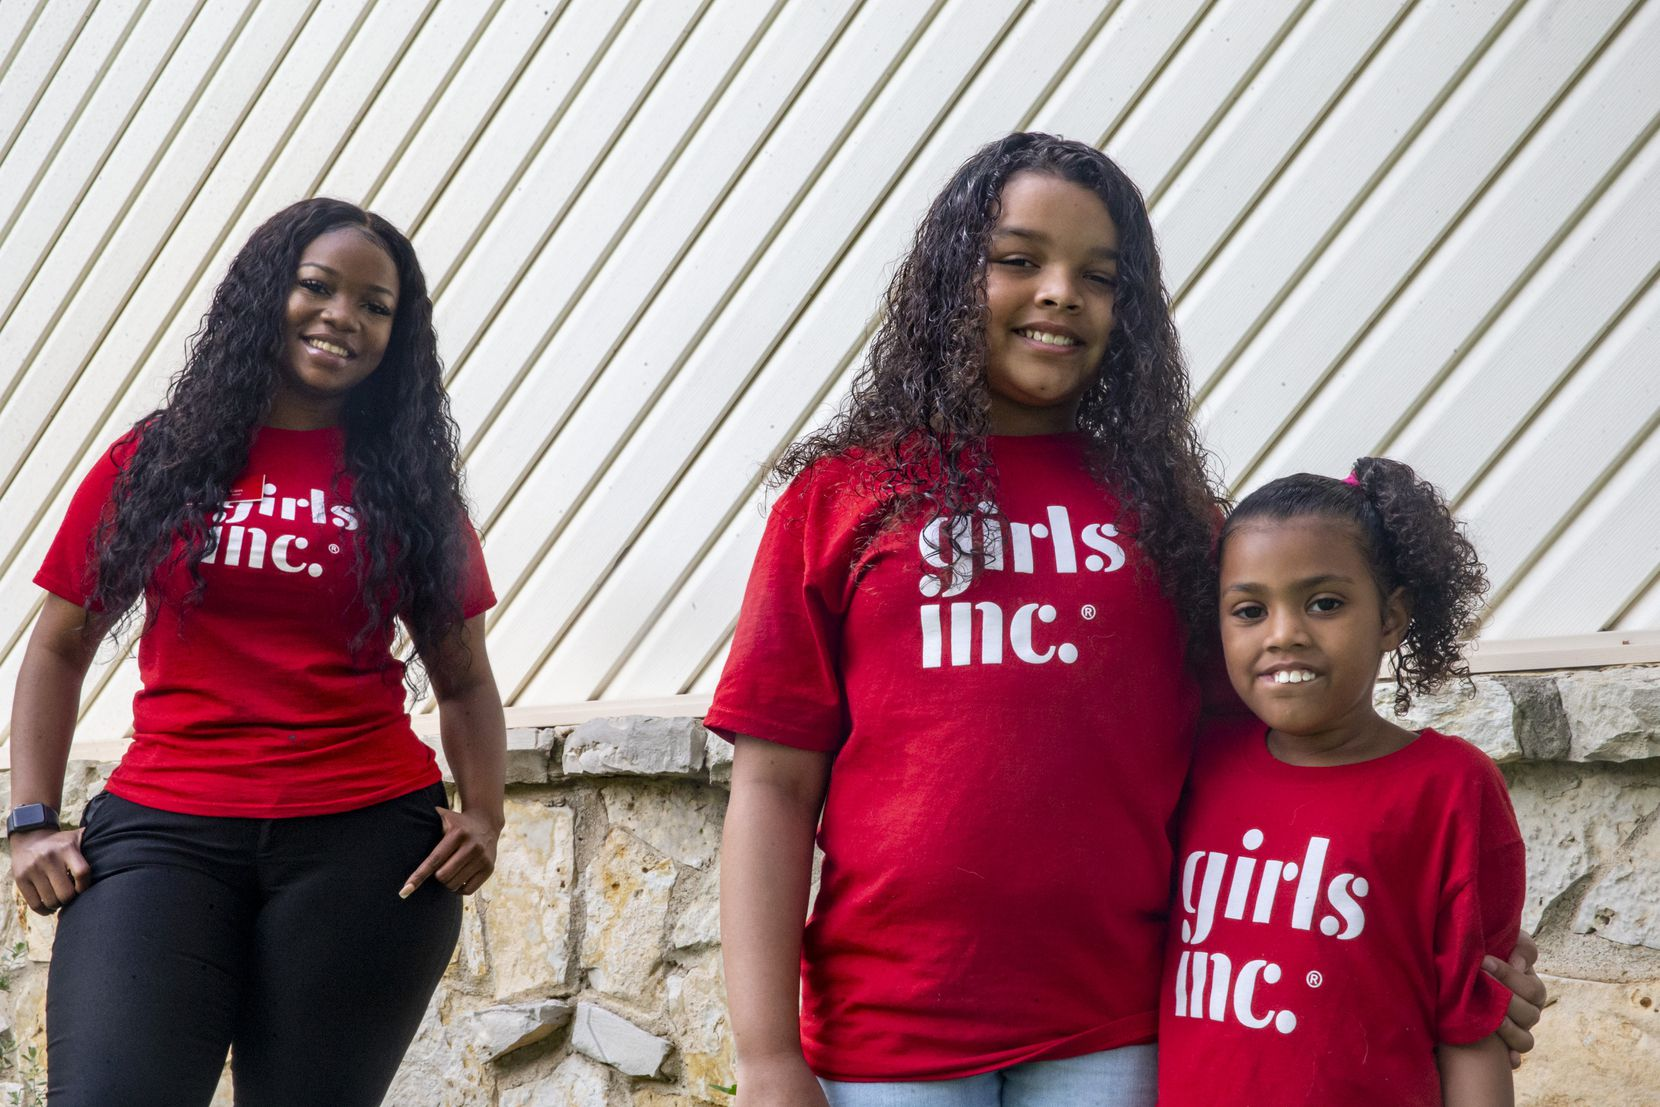 Girls Inc. program facilitator Natalie Cain (left) has continued to tutor sisters Aubrey Mendez (center), 10, and Destini King, 7, through the COVID-19 pandemic.